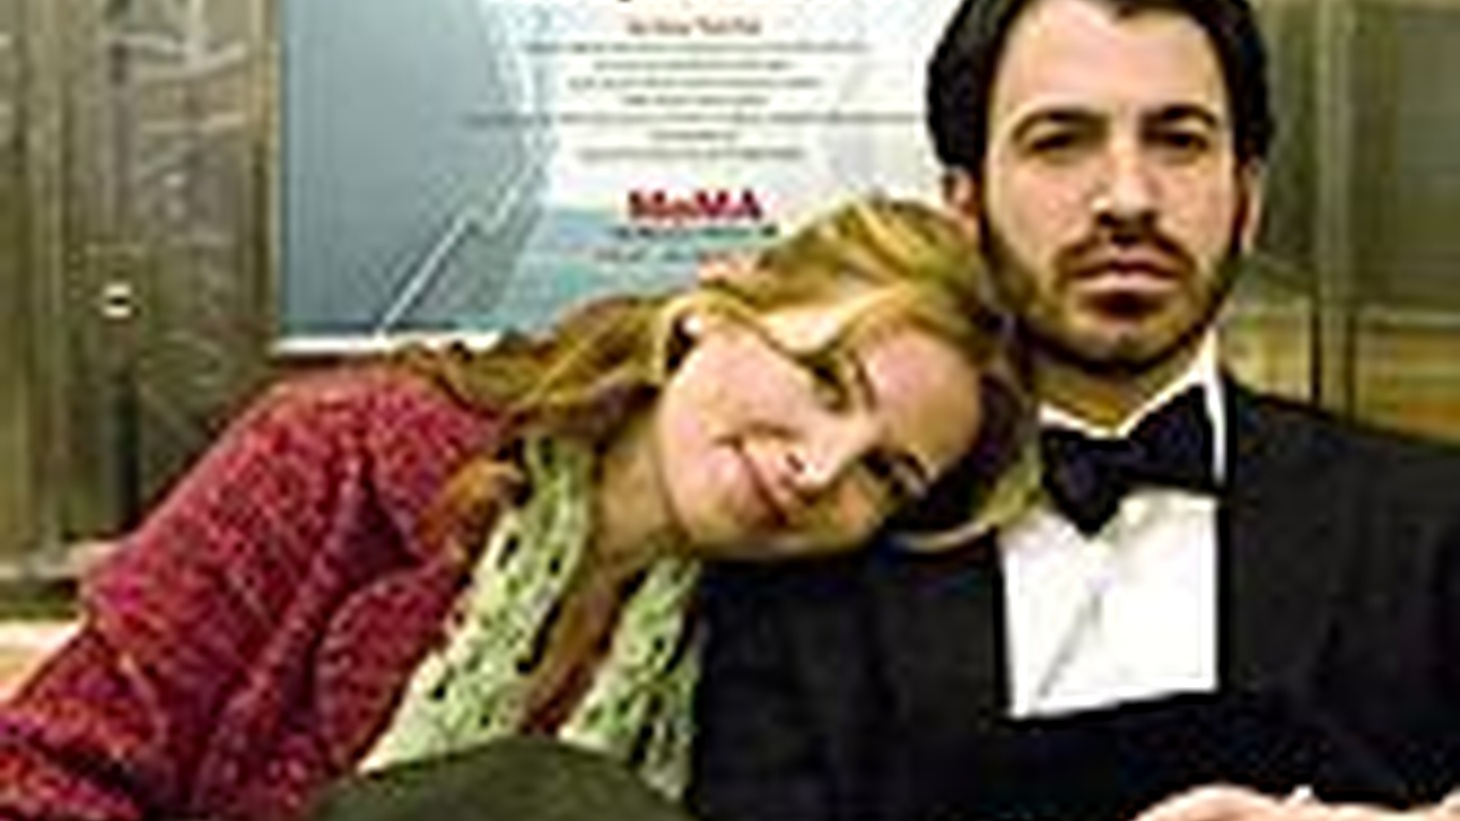 Wall Street Journal movie critic Joe Morgensternreviews Eastern Promises, The Brave One, and Ira and Abby.